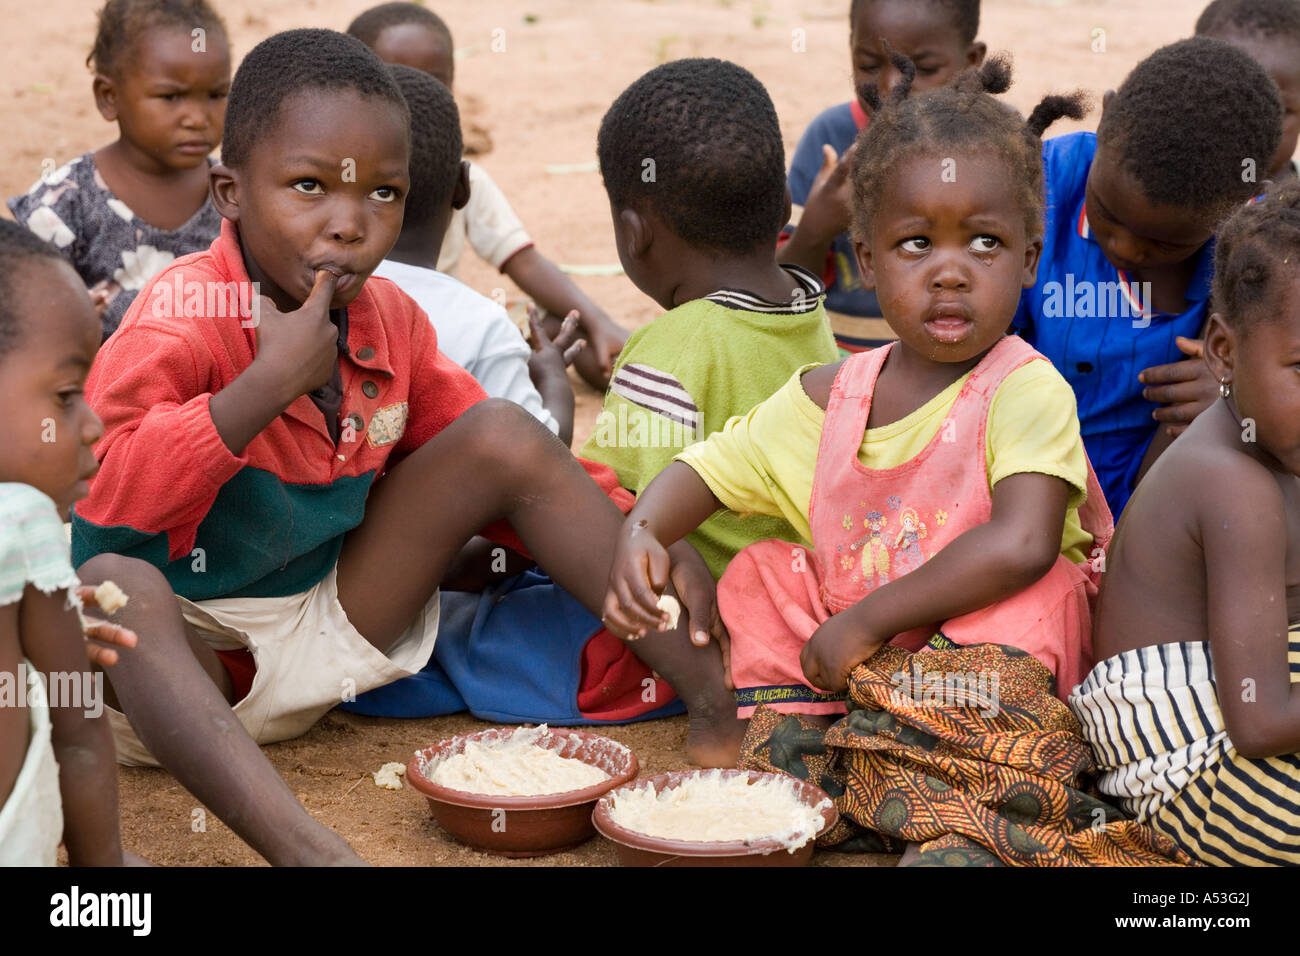 how to help feed the hungry in africa